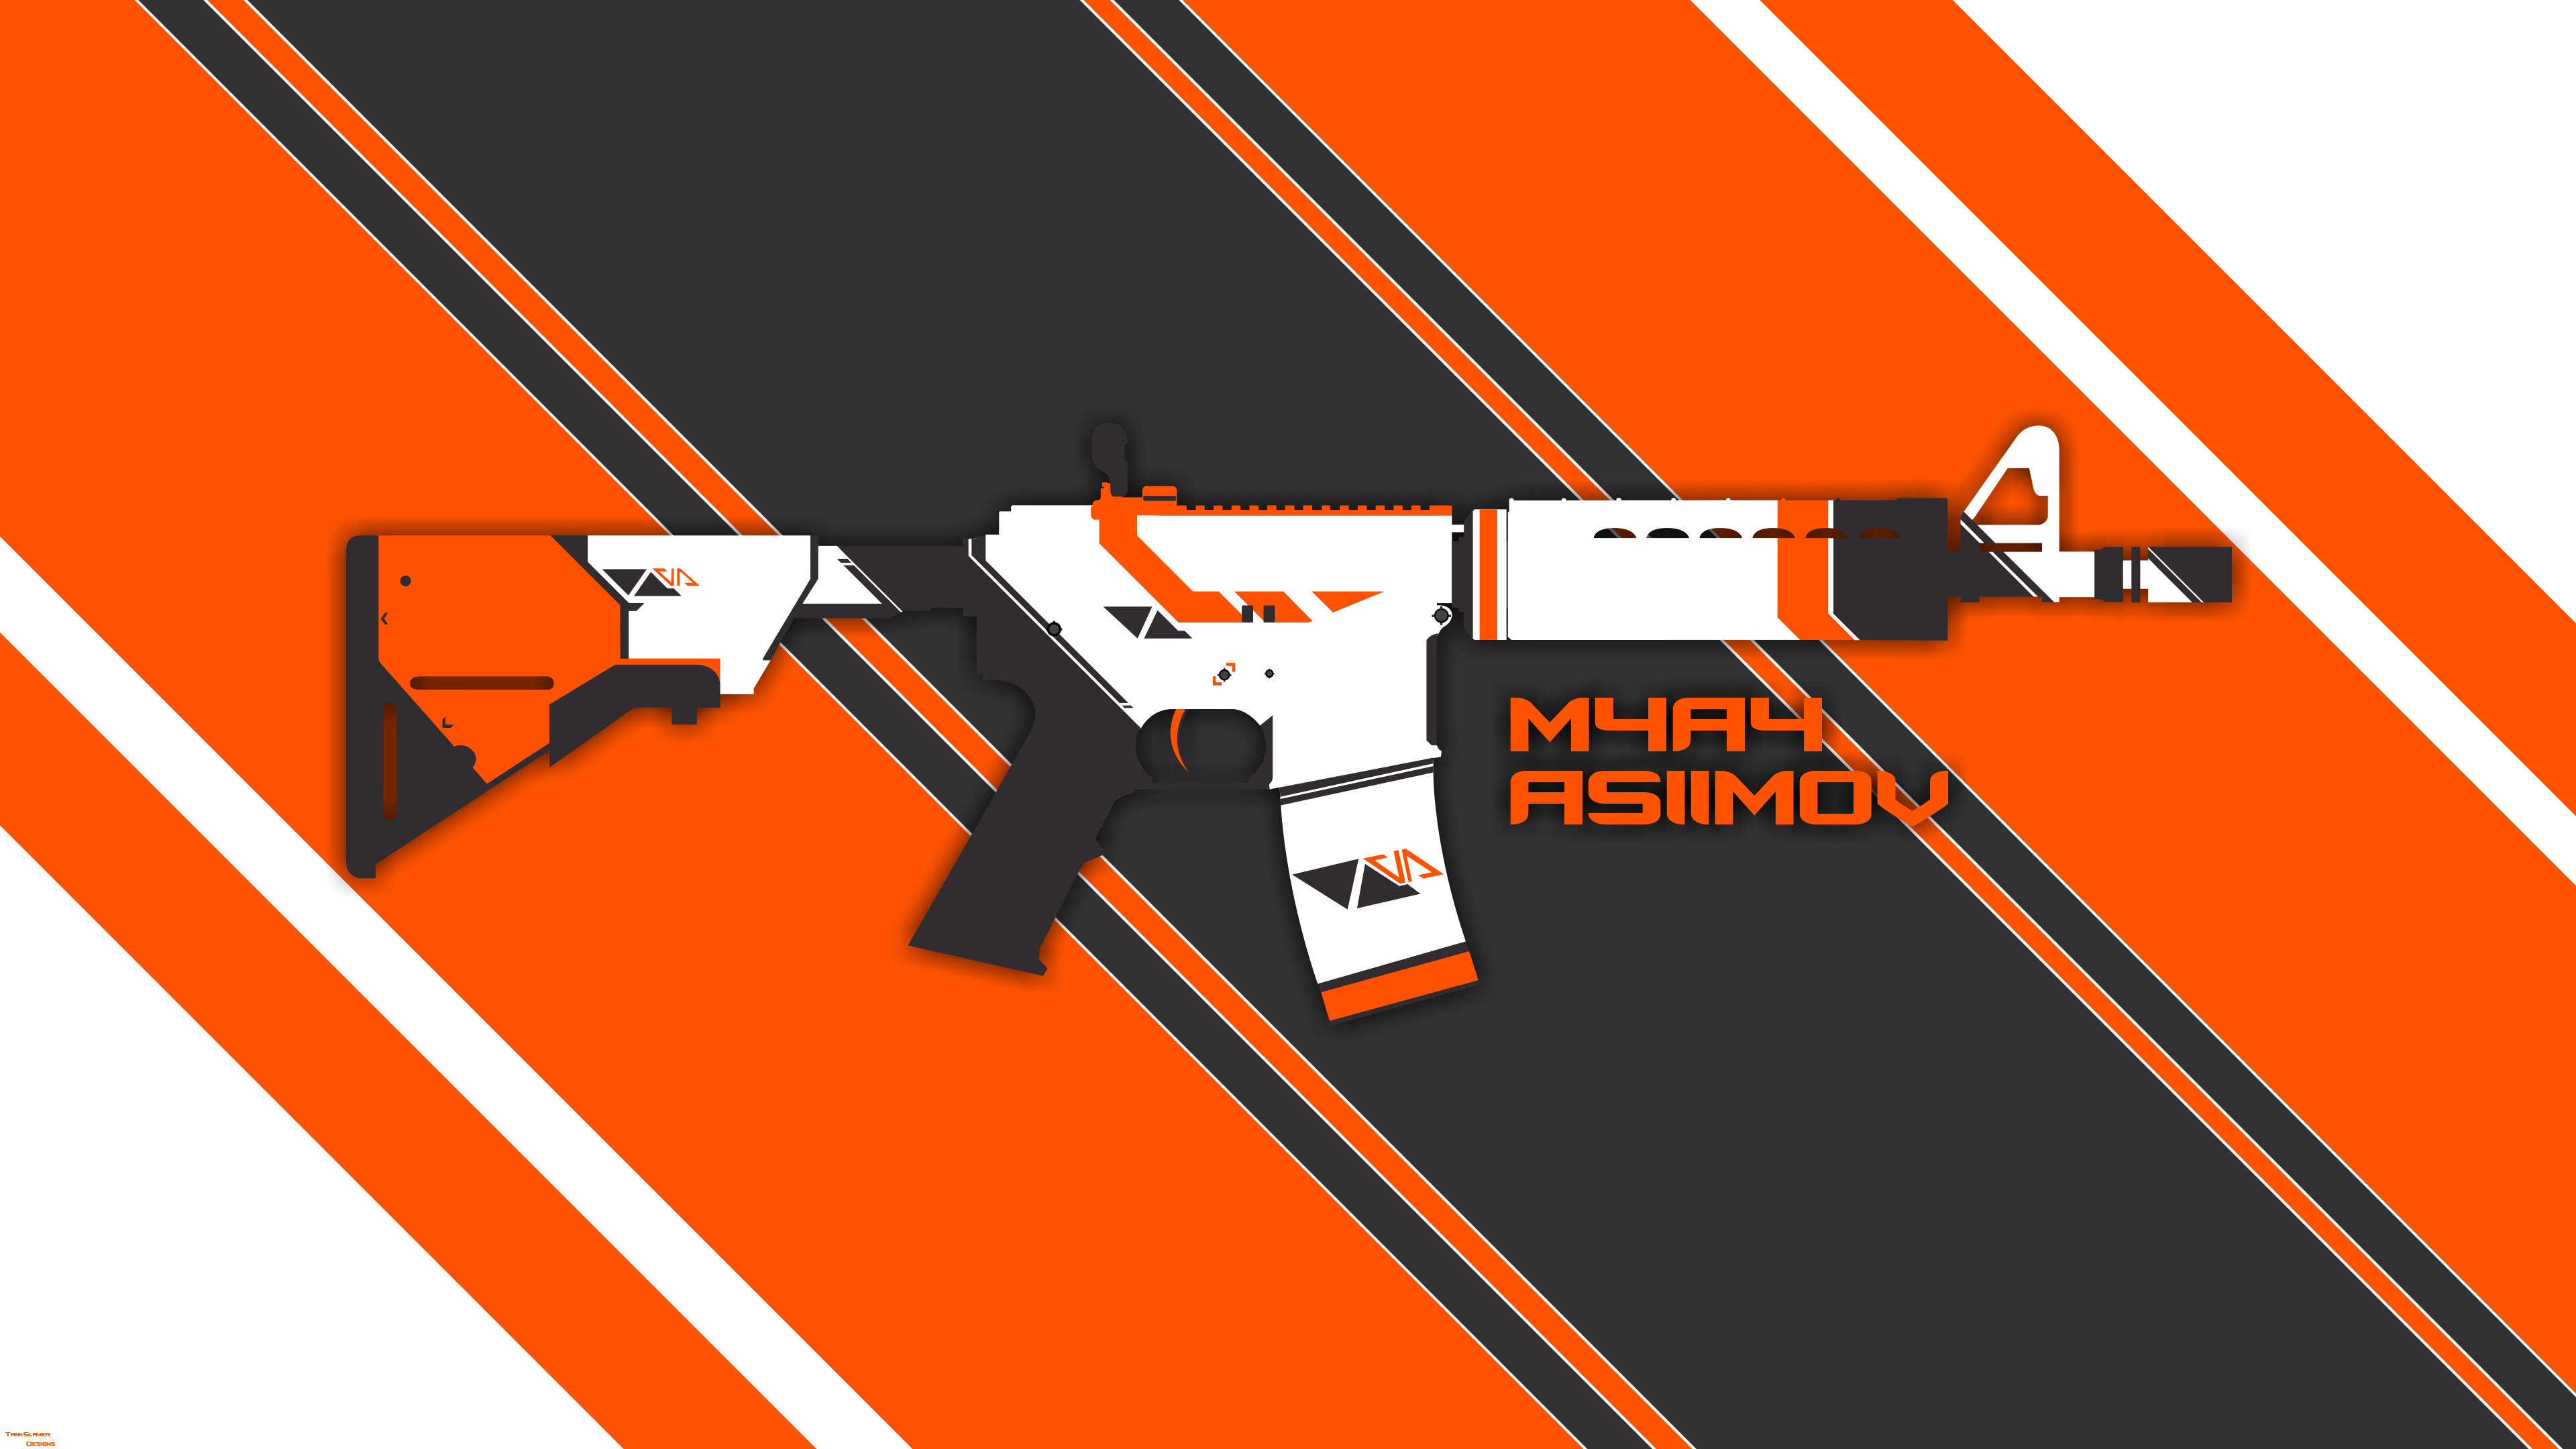 My Asiimov wallpapers that I've made from scratch!